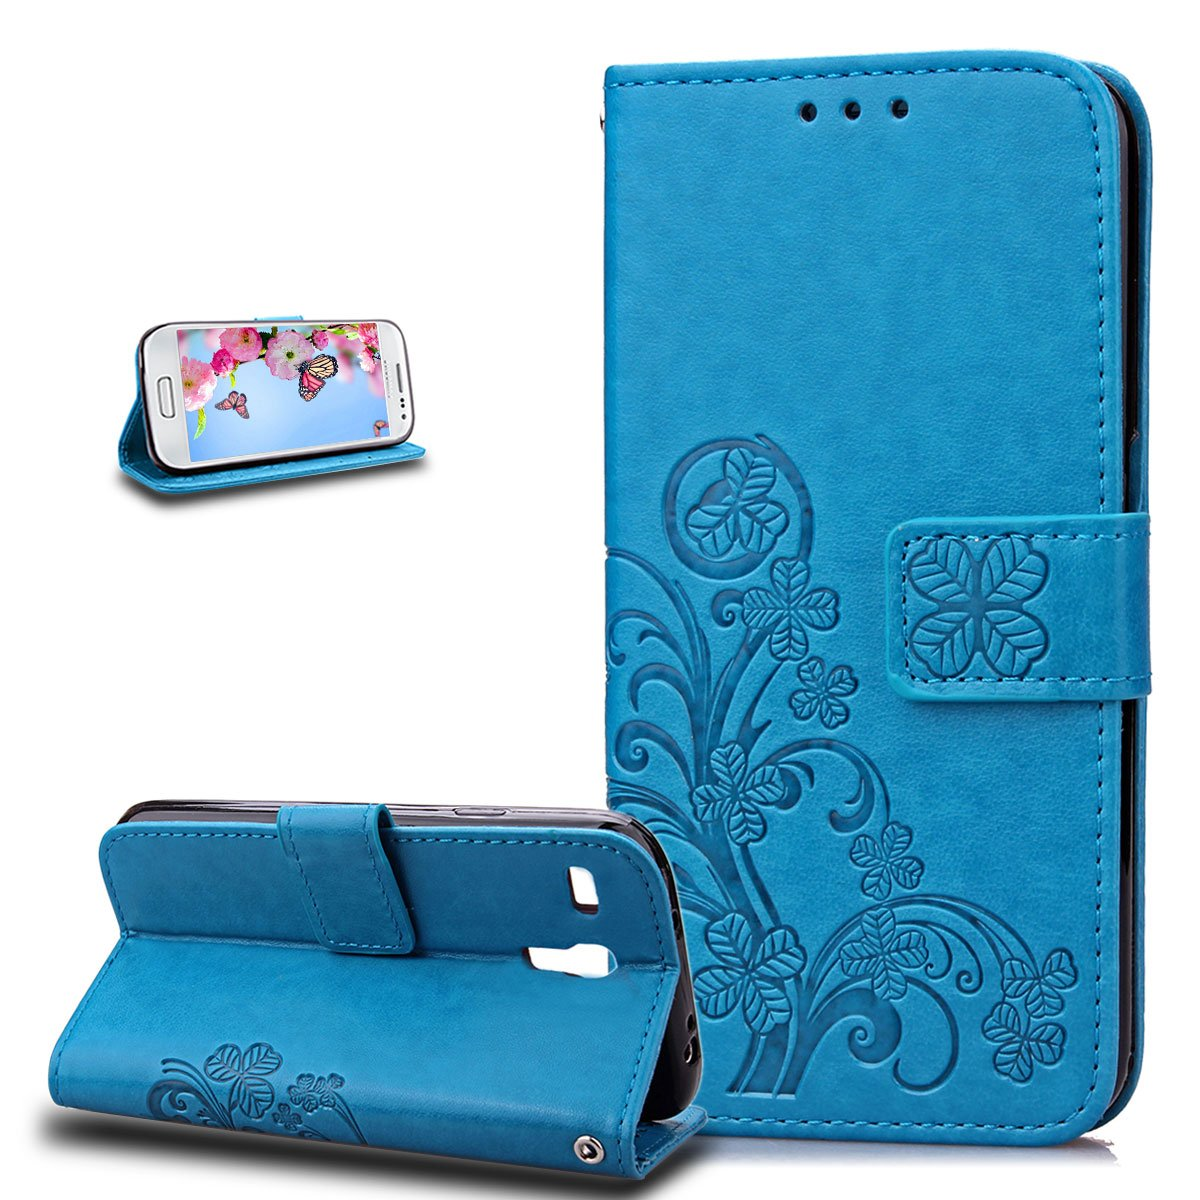 Galaxy S3 Mini Case, Wallet Case for Galaxy S3 Mini, ikasus Embossing Clover Flower PU Leather Fold Wallet Pouch PU Leather Wallet Flip Stand Credit Card Holders Case Cover for Galaxy S3 Mini, Blue